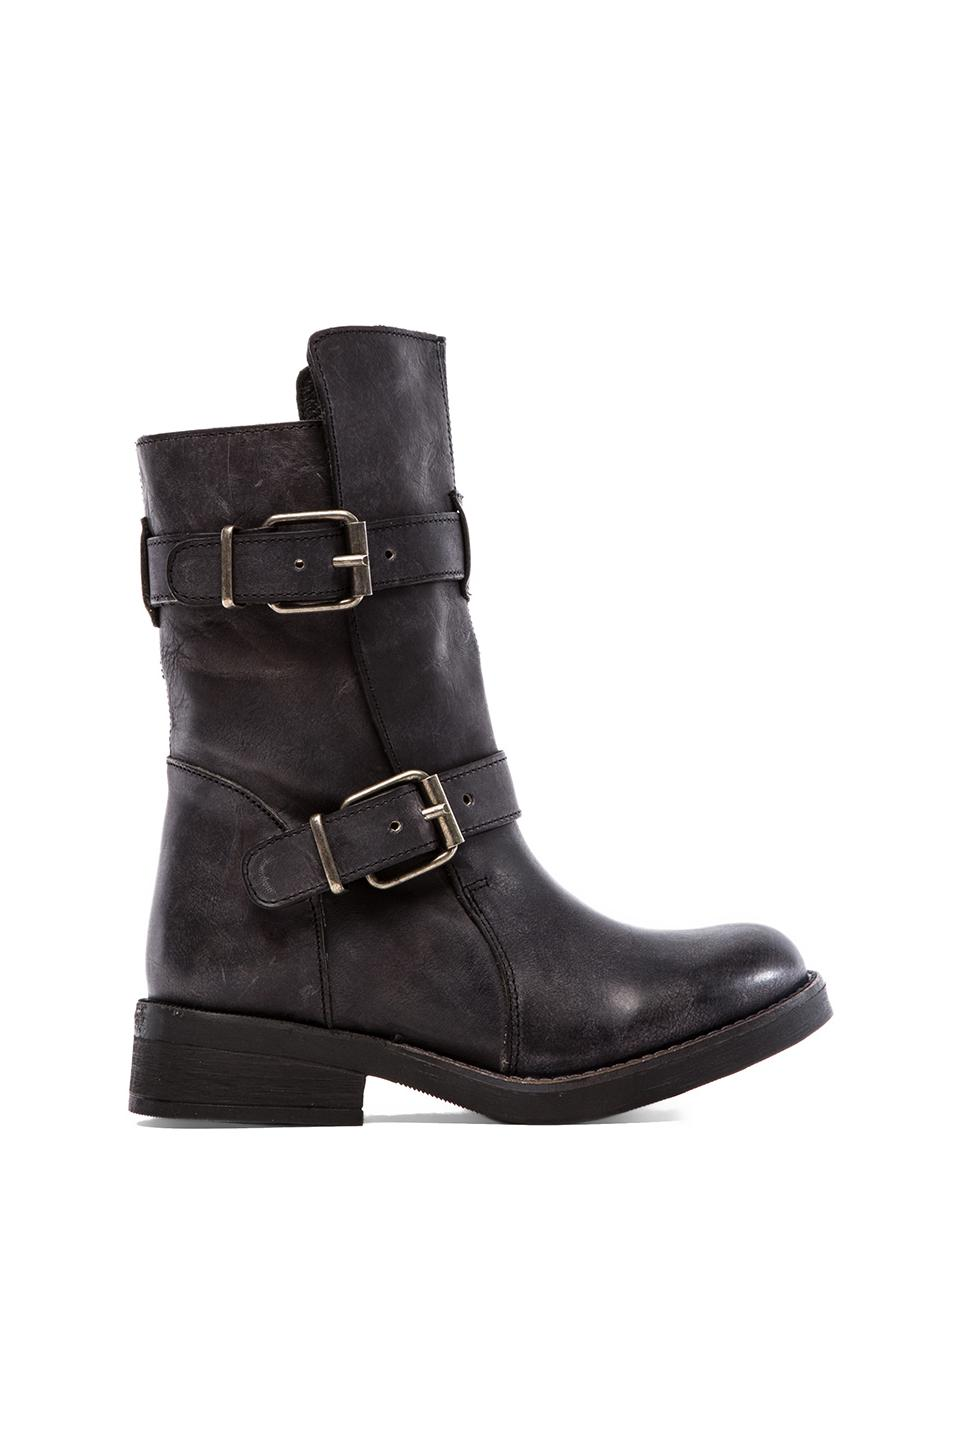 Steve Madden Caveat Boot in Black